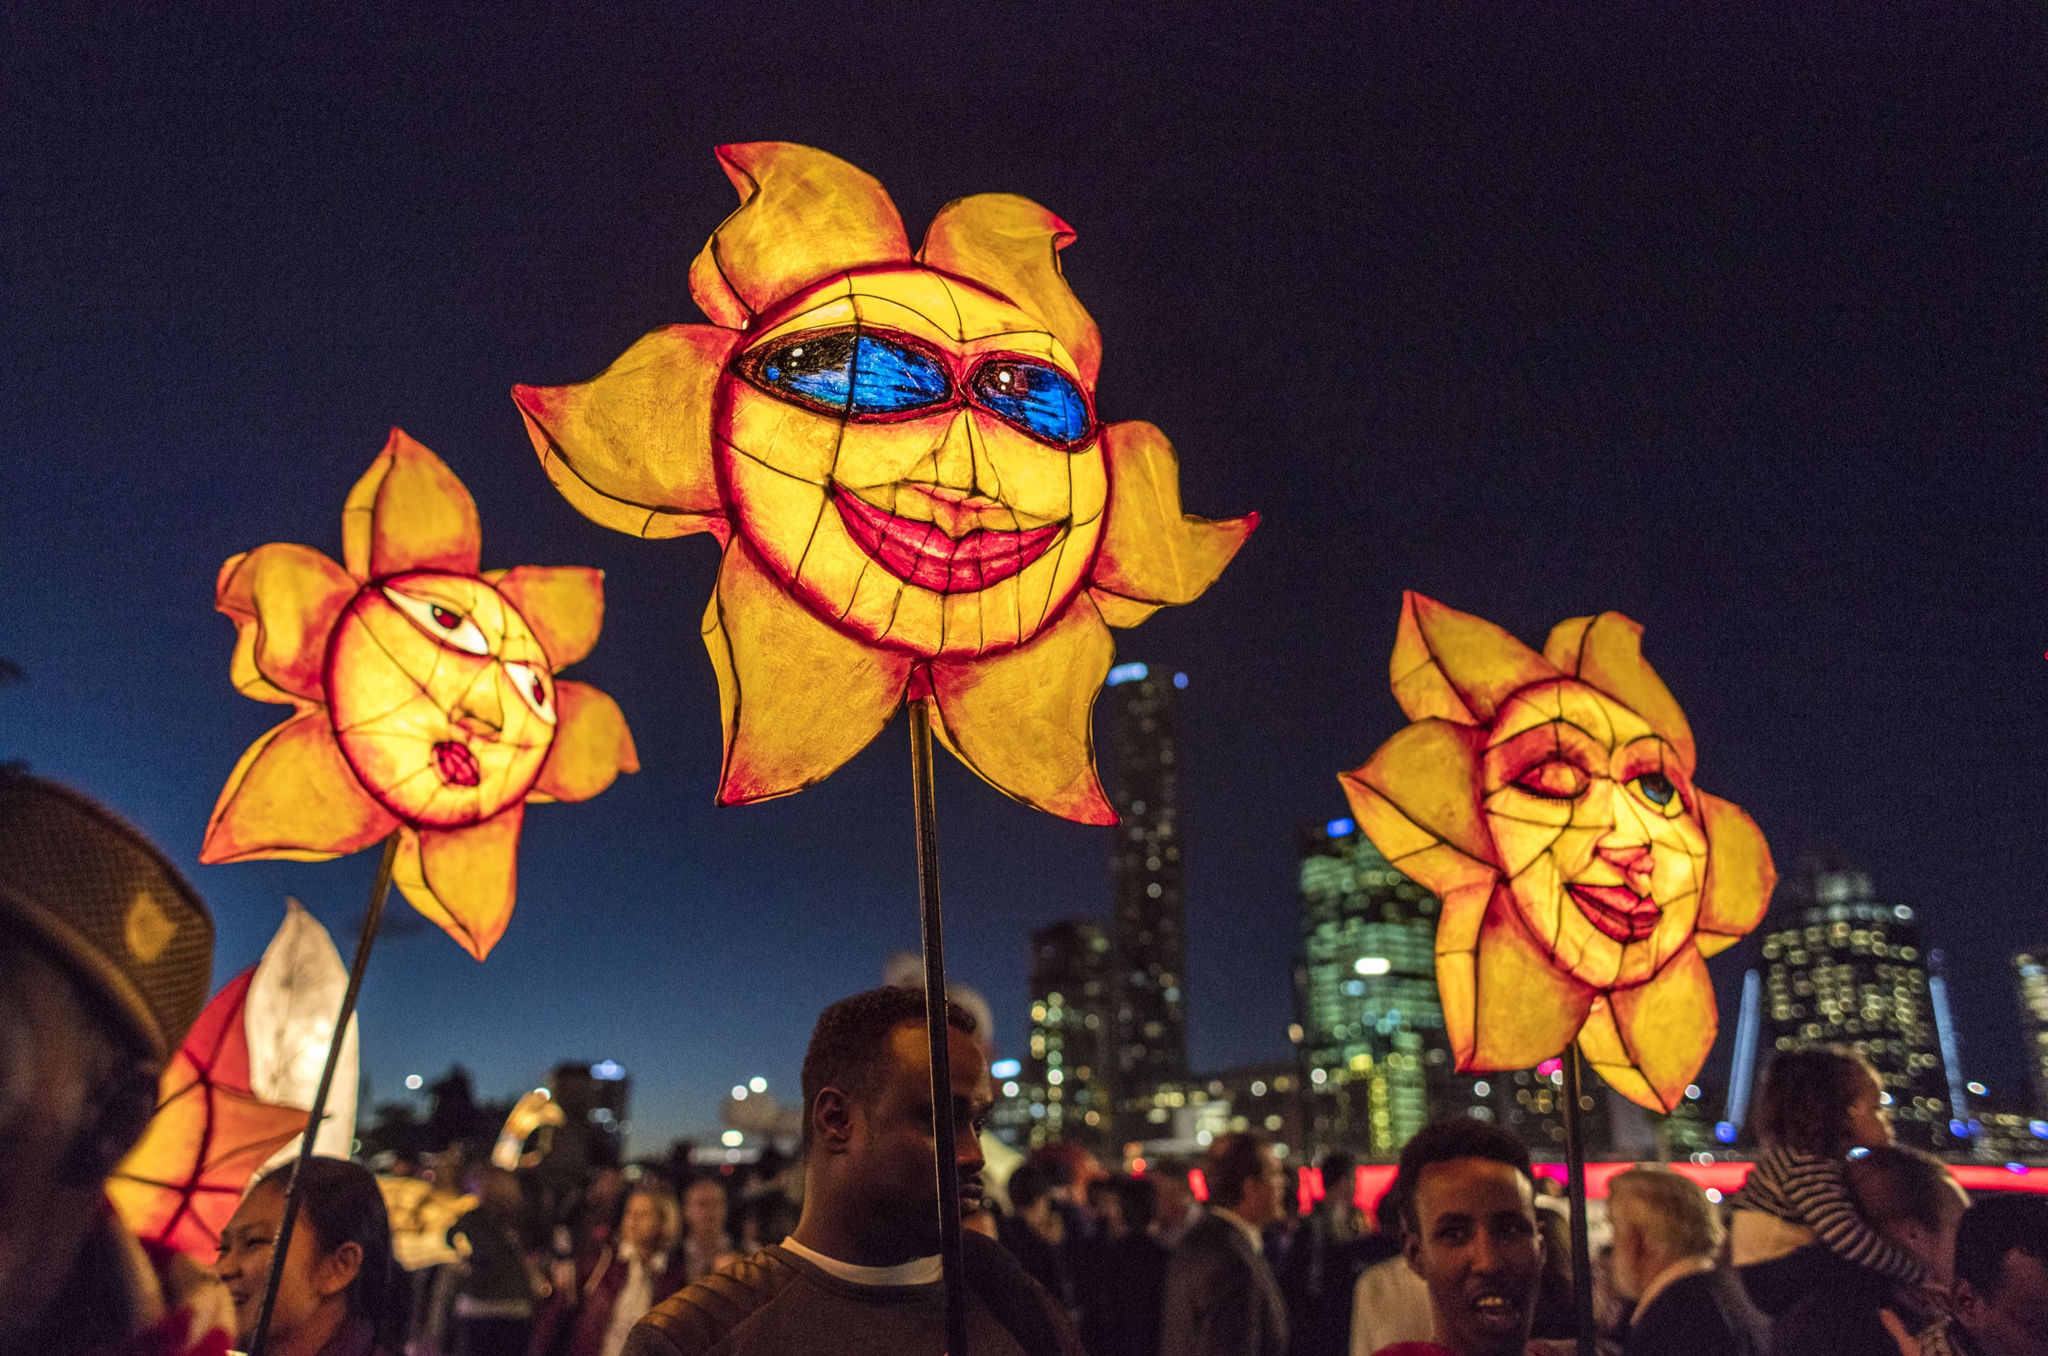 BRISBANE, AUSTRALIA - JUNE 10:  The Luminous Lantern Parade on June 10, 2016 in Brisbane, Australia. The annual parade is aimed at promoting multiculturalism and welcome new arrivals.  (Photo by Glenn Hunt/Getty Images)